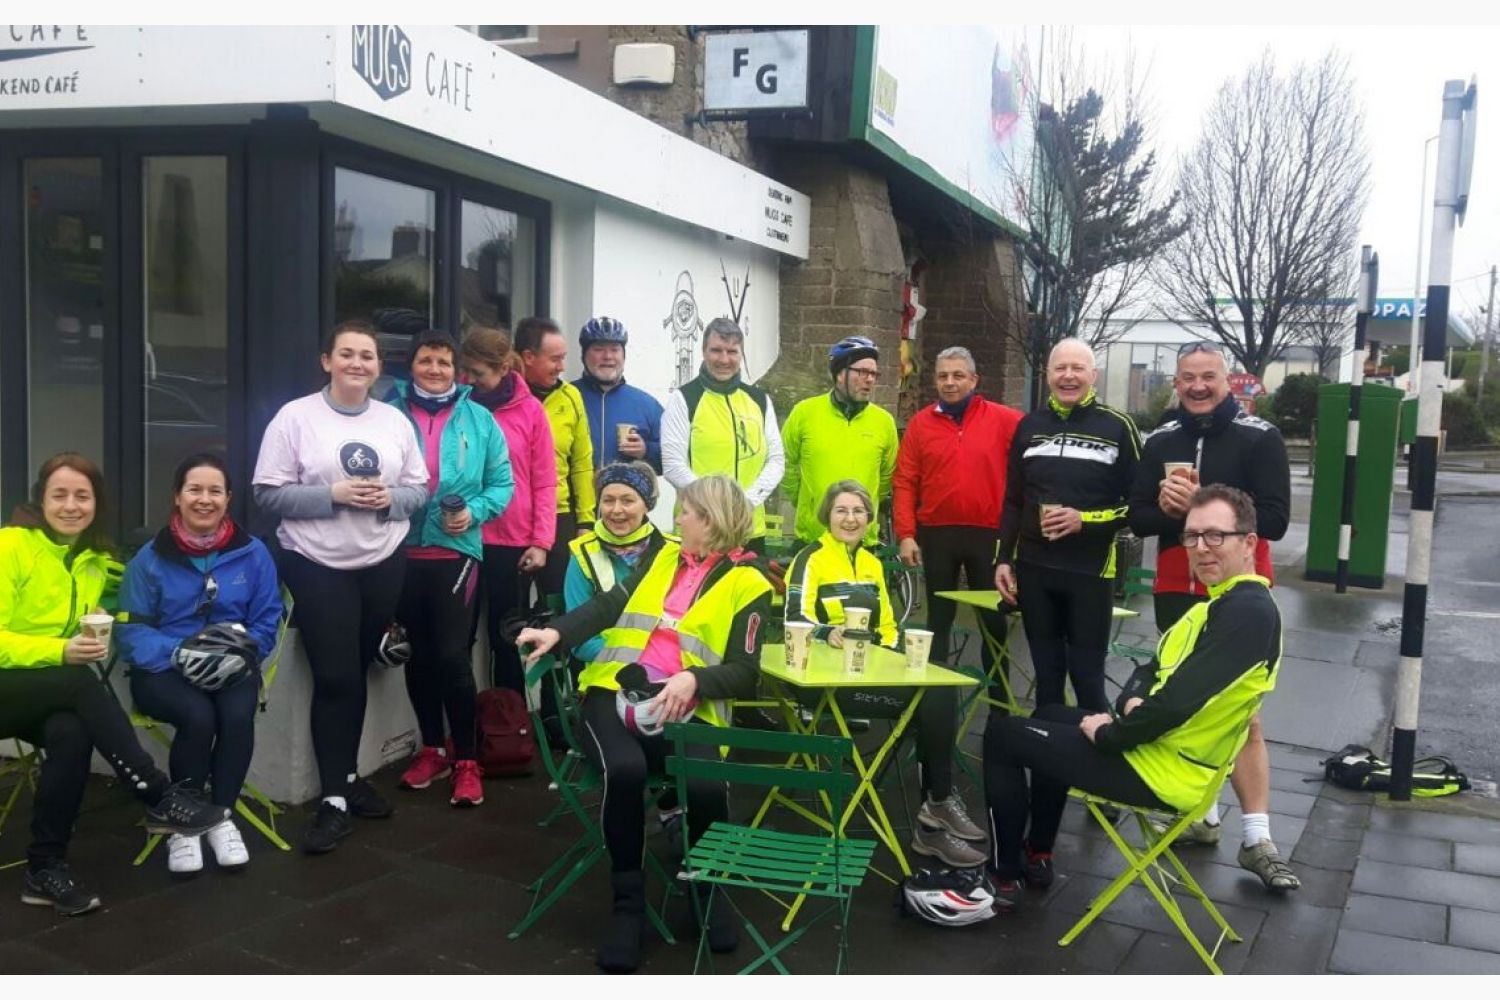 KickStart Crokes 0 to 50km cycle  2018 - Training Underway